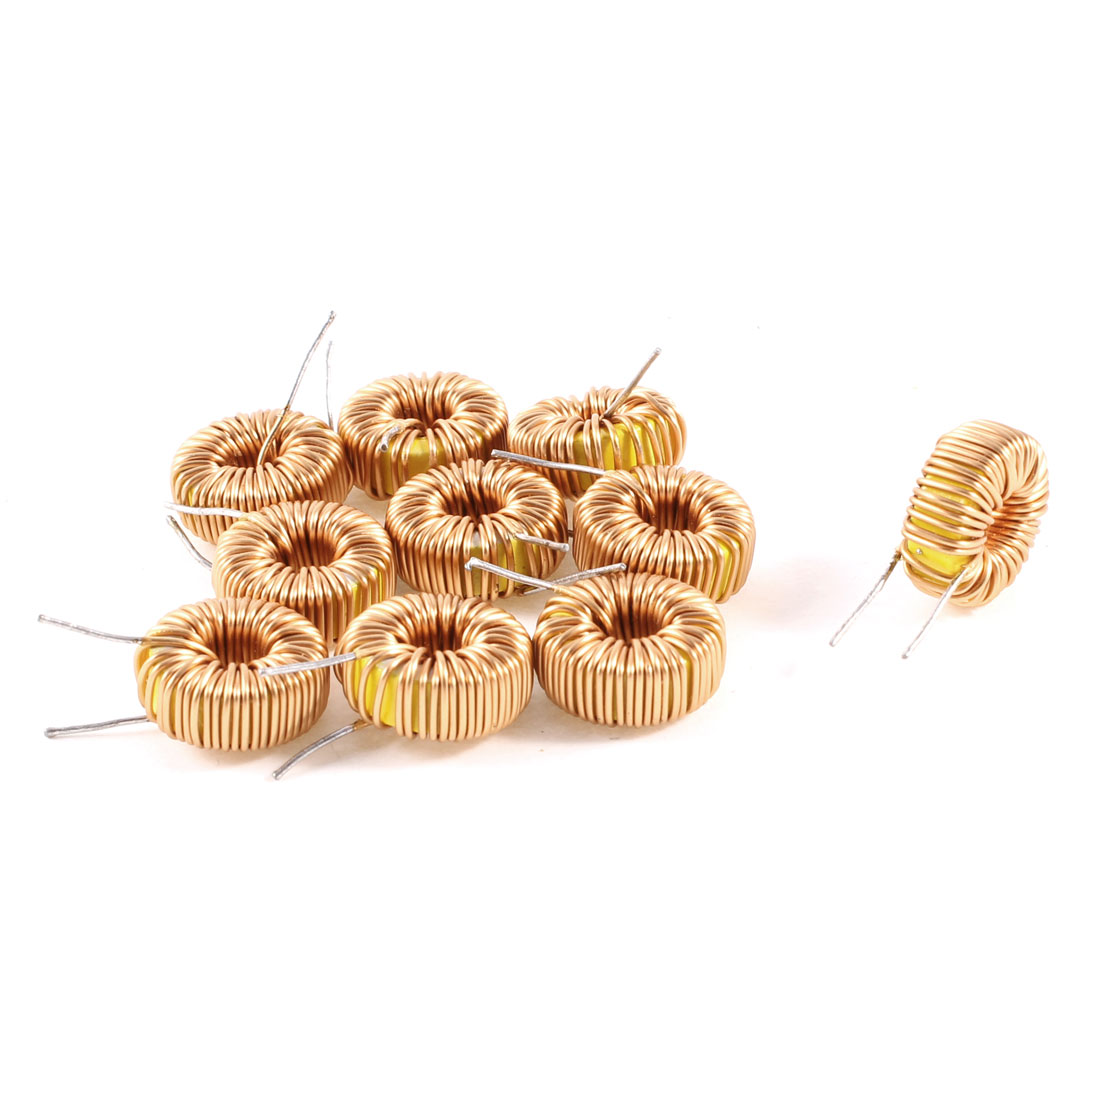 10 Pcs Toroid Core Inductor Wire Wind Wound 100uH 81mOhm 2A Coil